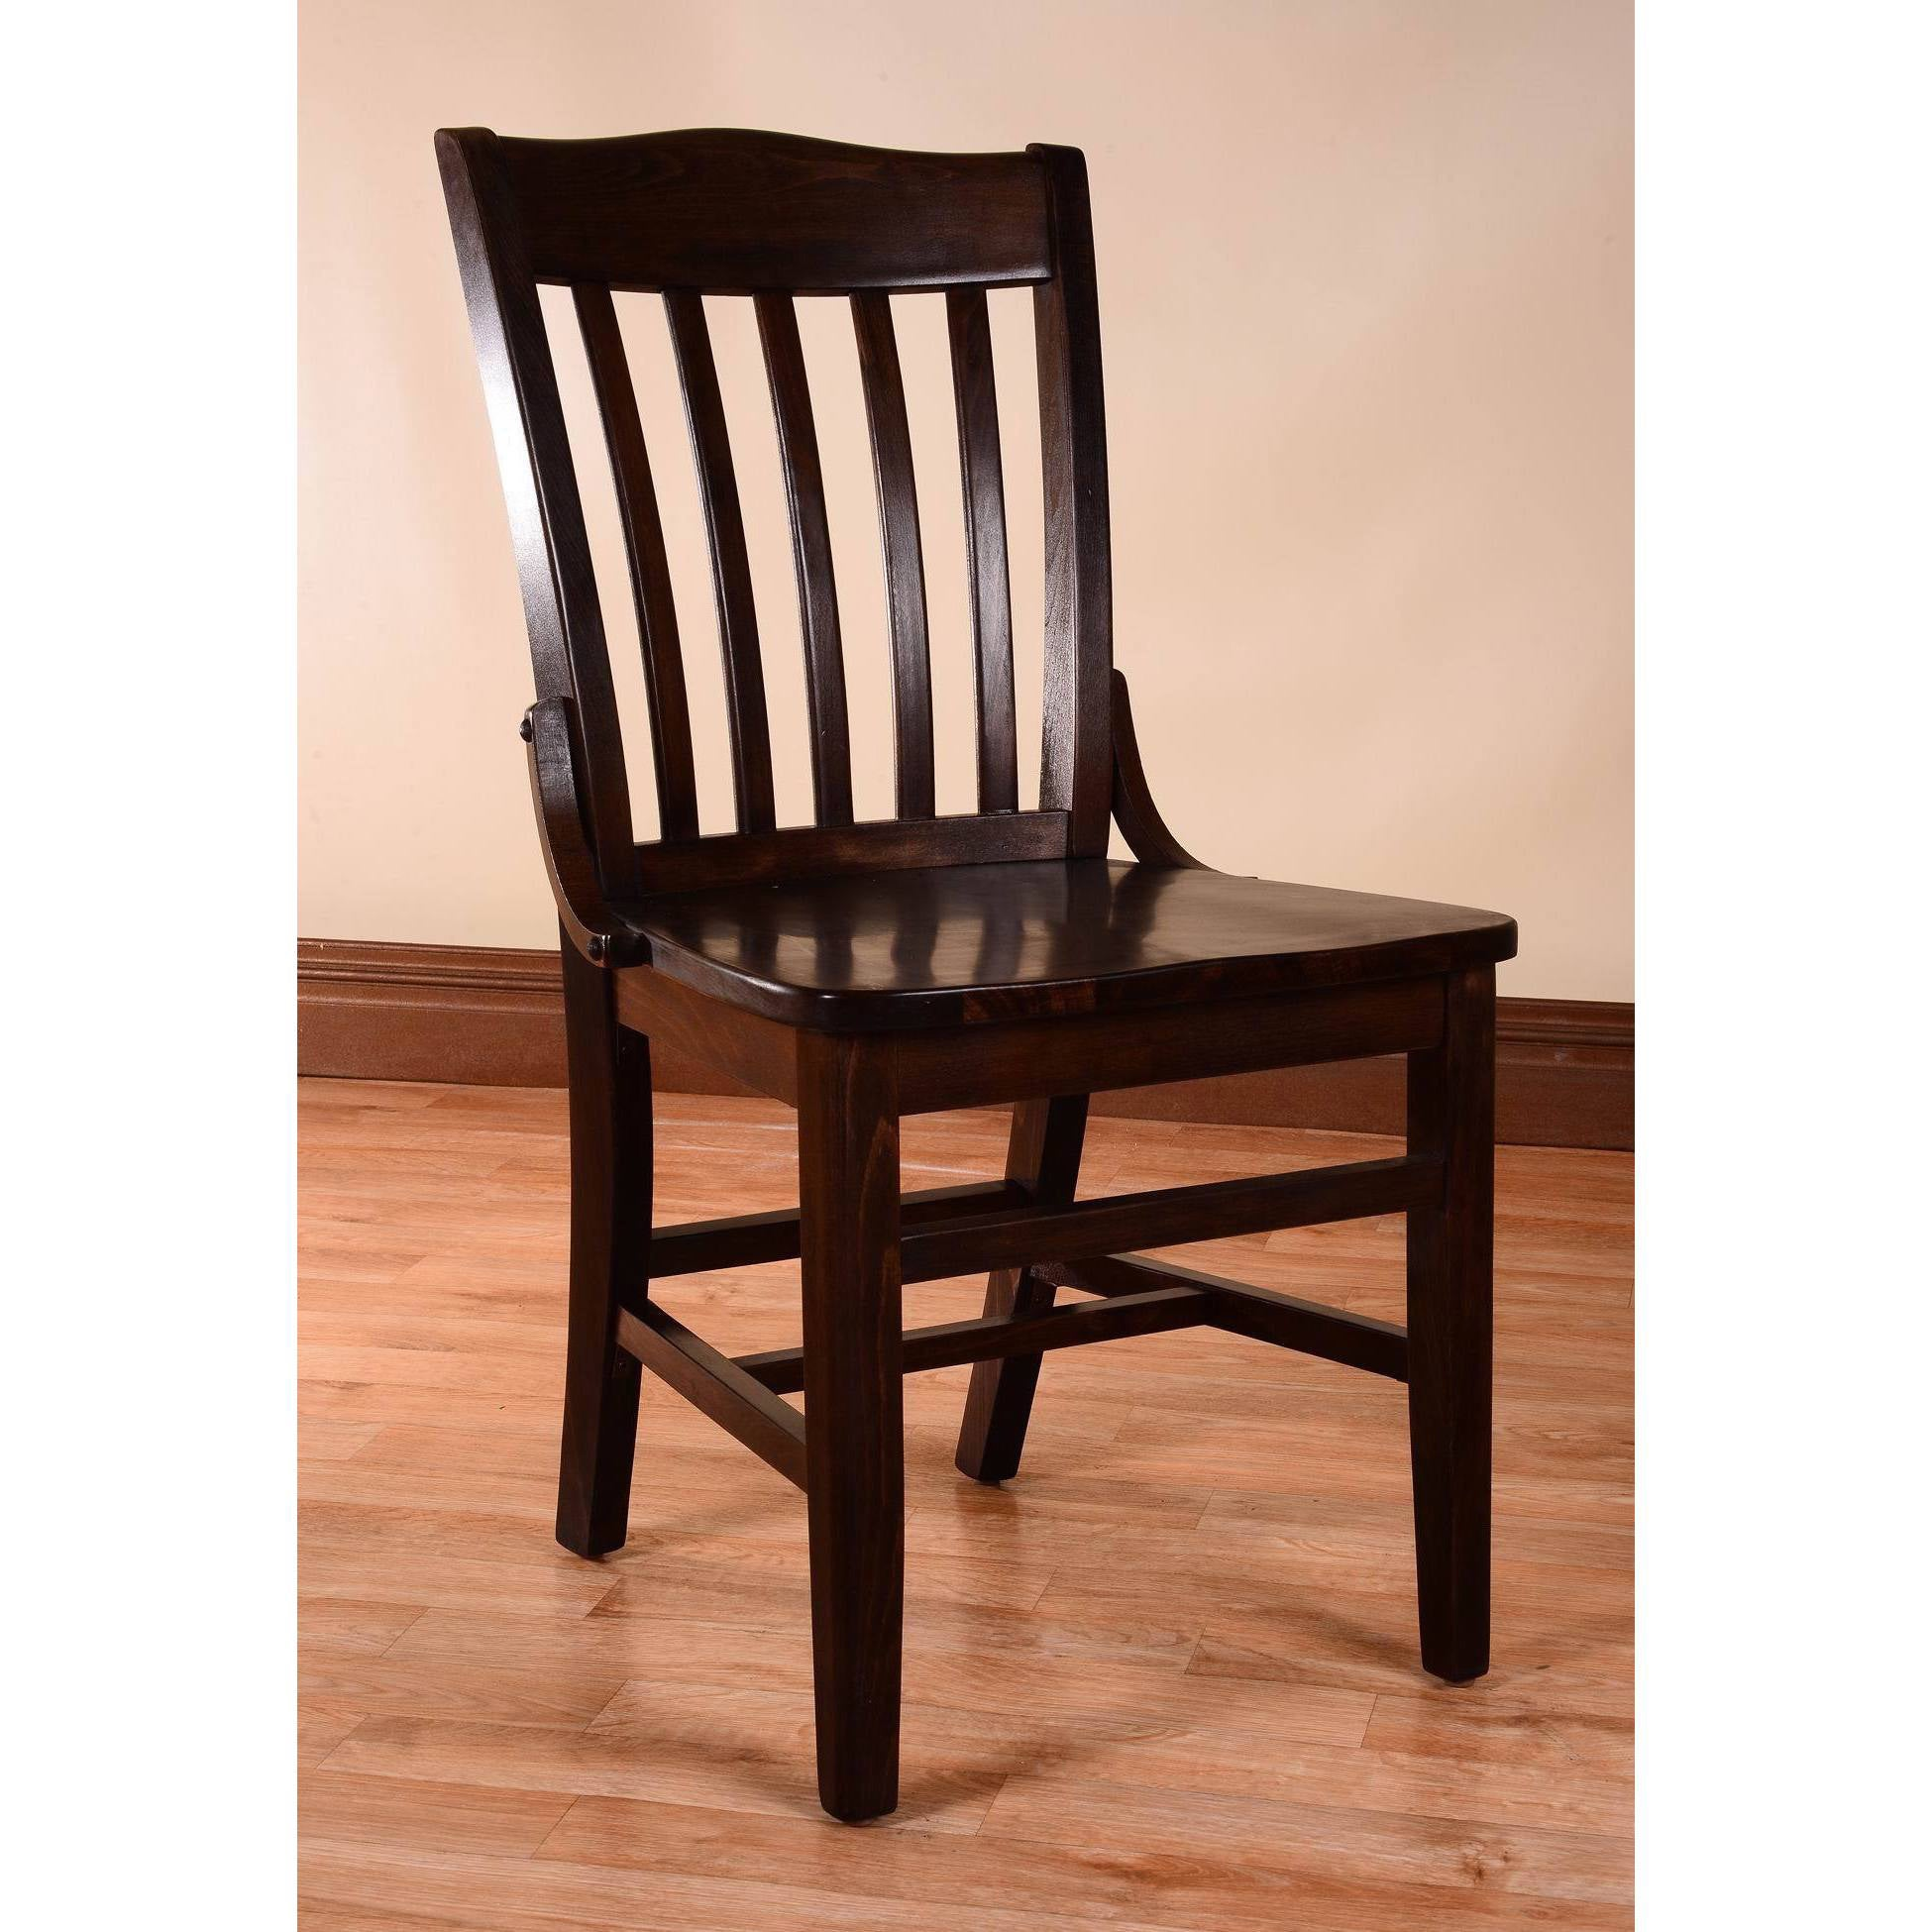 Gracewood Hollow Mantel School House Dining Chairs (Set Of 2)